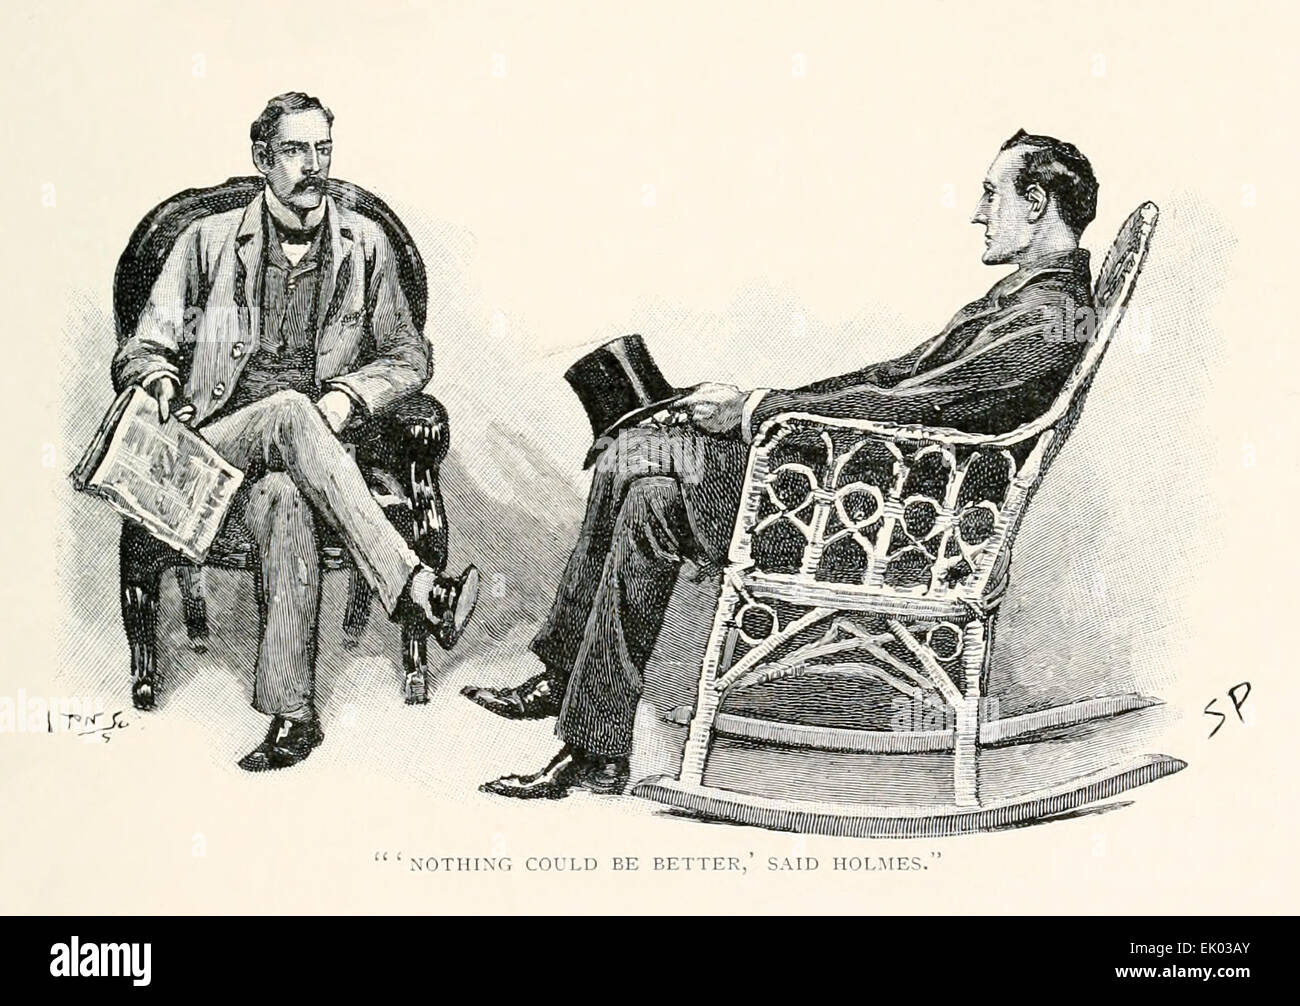 'Nothing could be better', said Holmes - from 'The Stockbroker's Clerk' by Arthur Conan Doyle - Stock Image